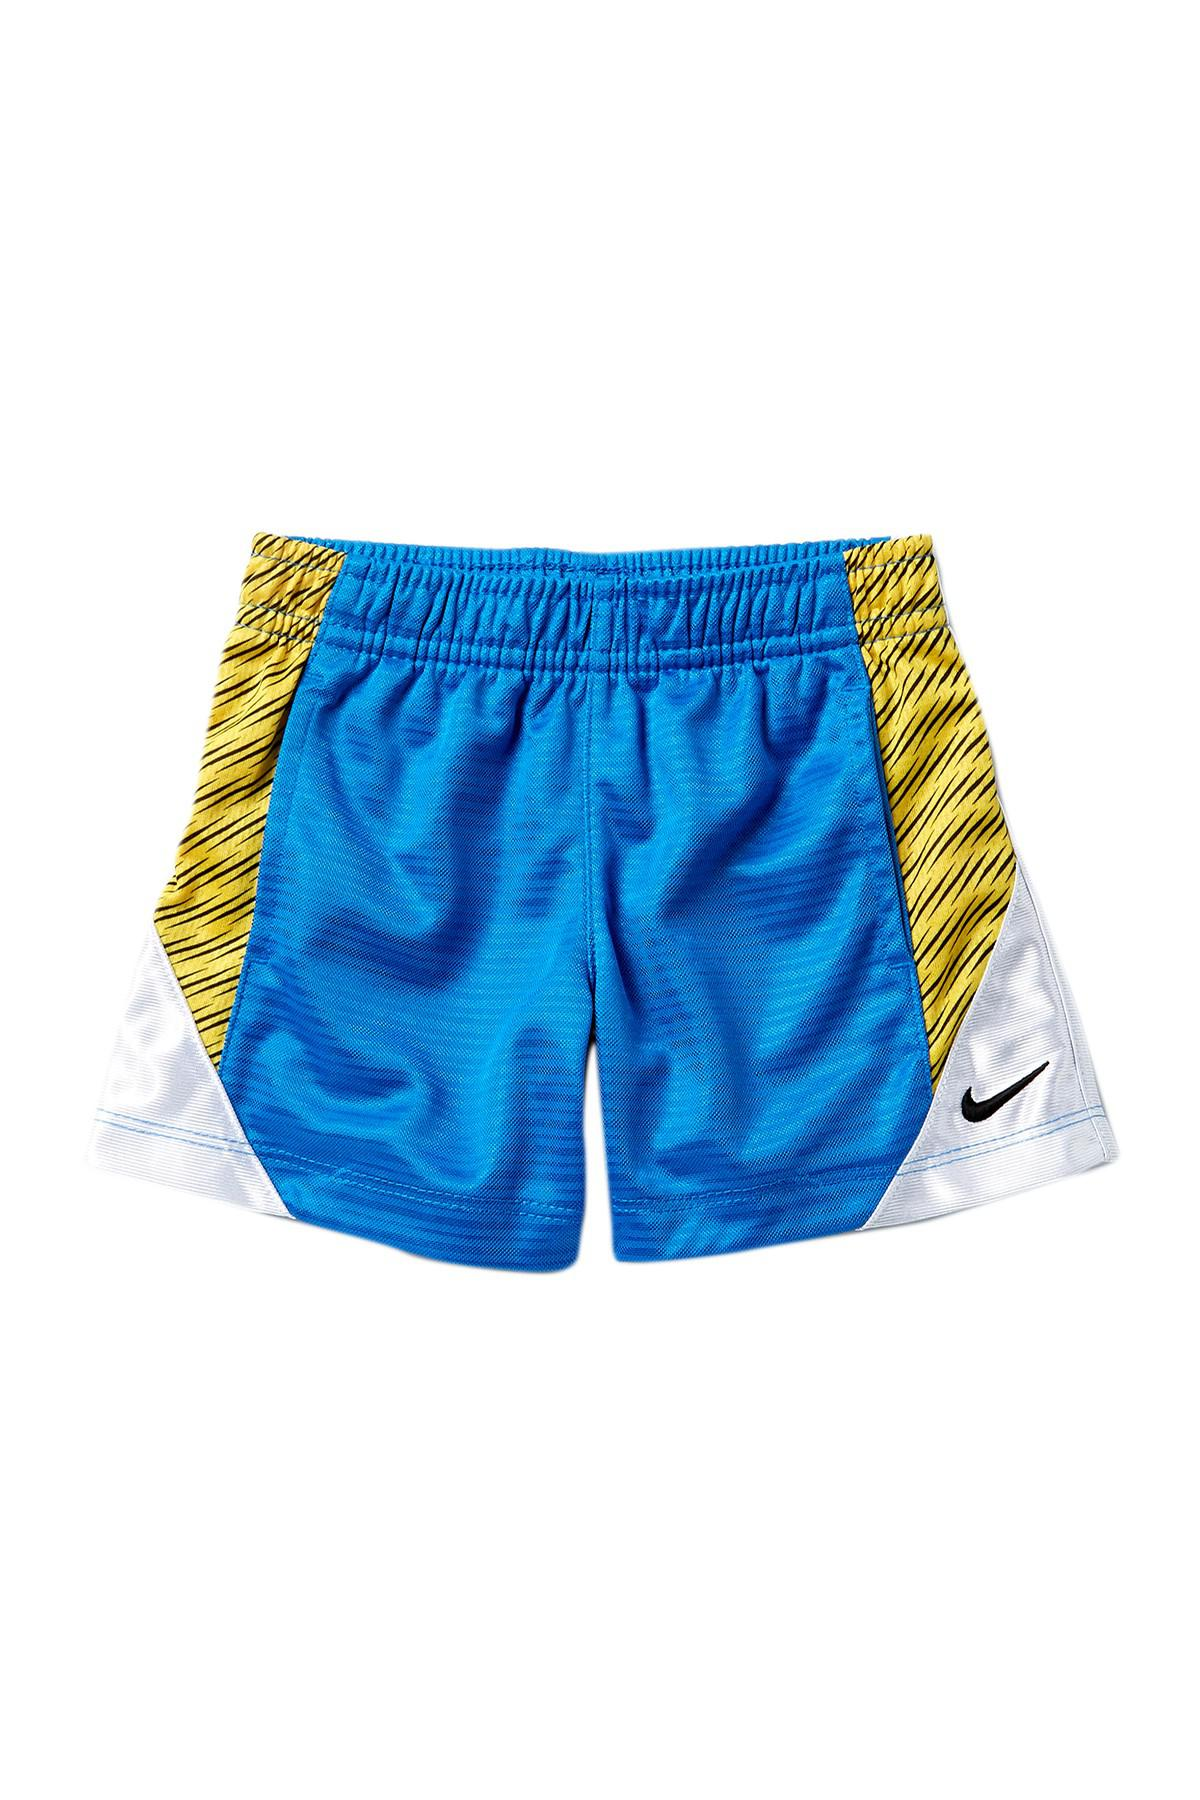 88dfcf975 Lyst - Nike Printed Basketball Shorts (baby Boys) in Blue for Men